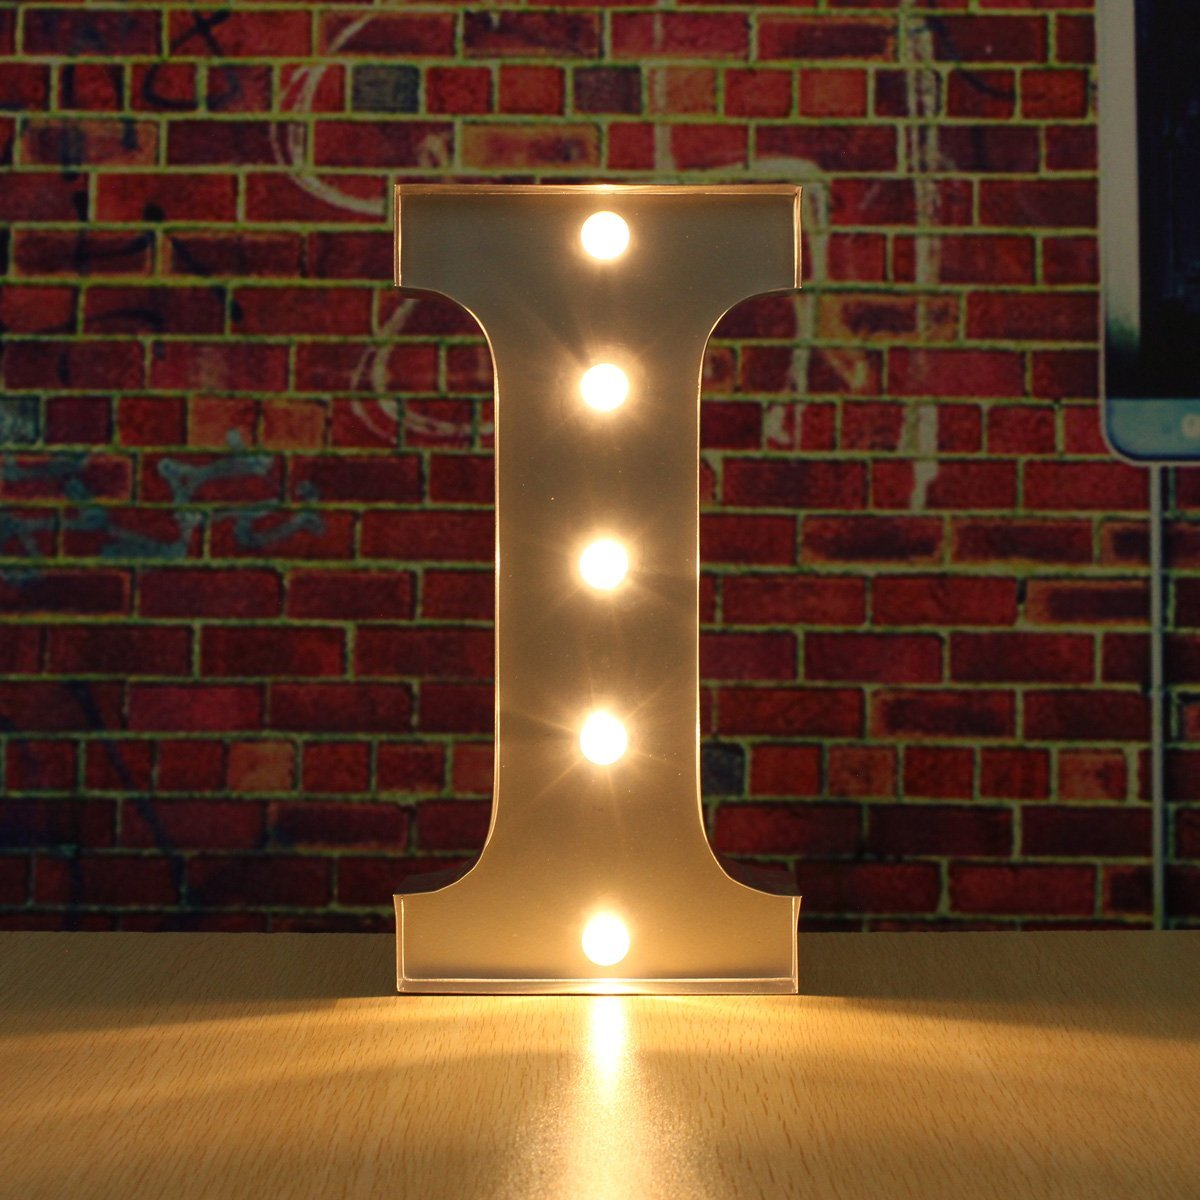 SOLMORE 30CM x 5CM LED Metal Marquee Letter Lights Vintage Circus Style Alphabet Light Up Sign Decoration I 0